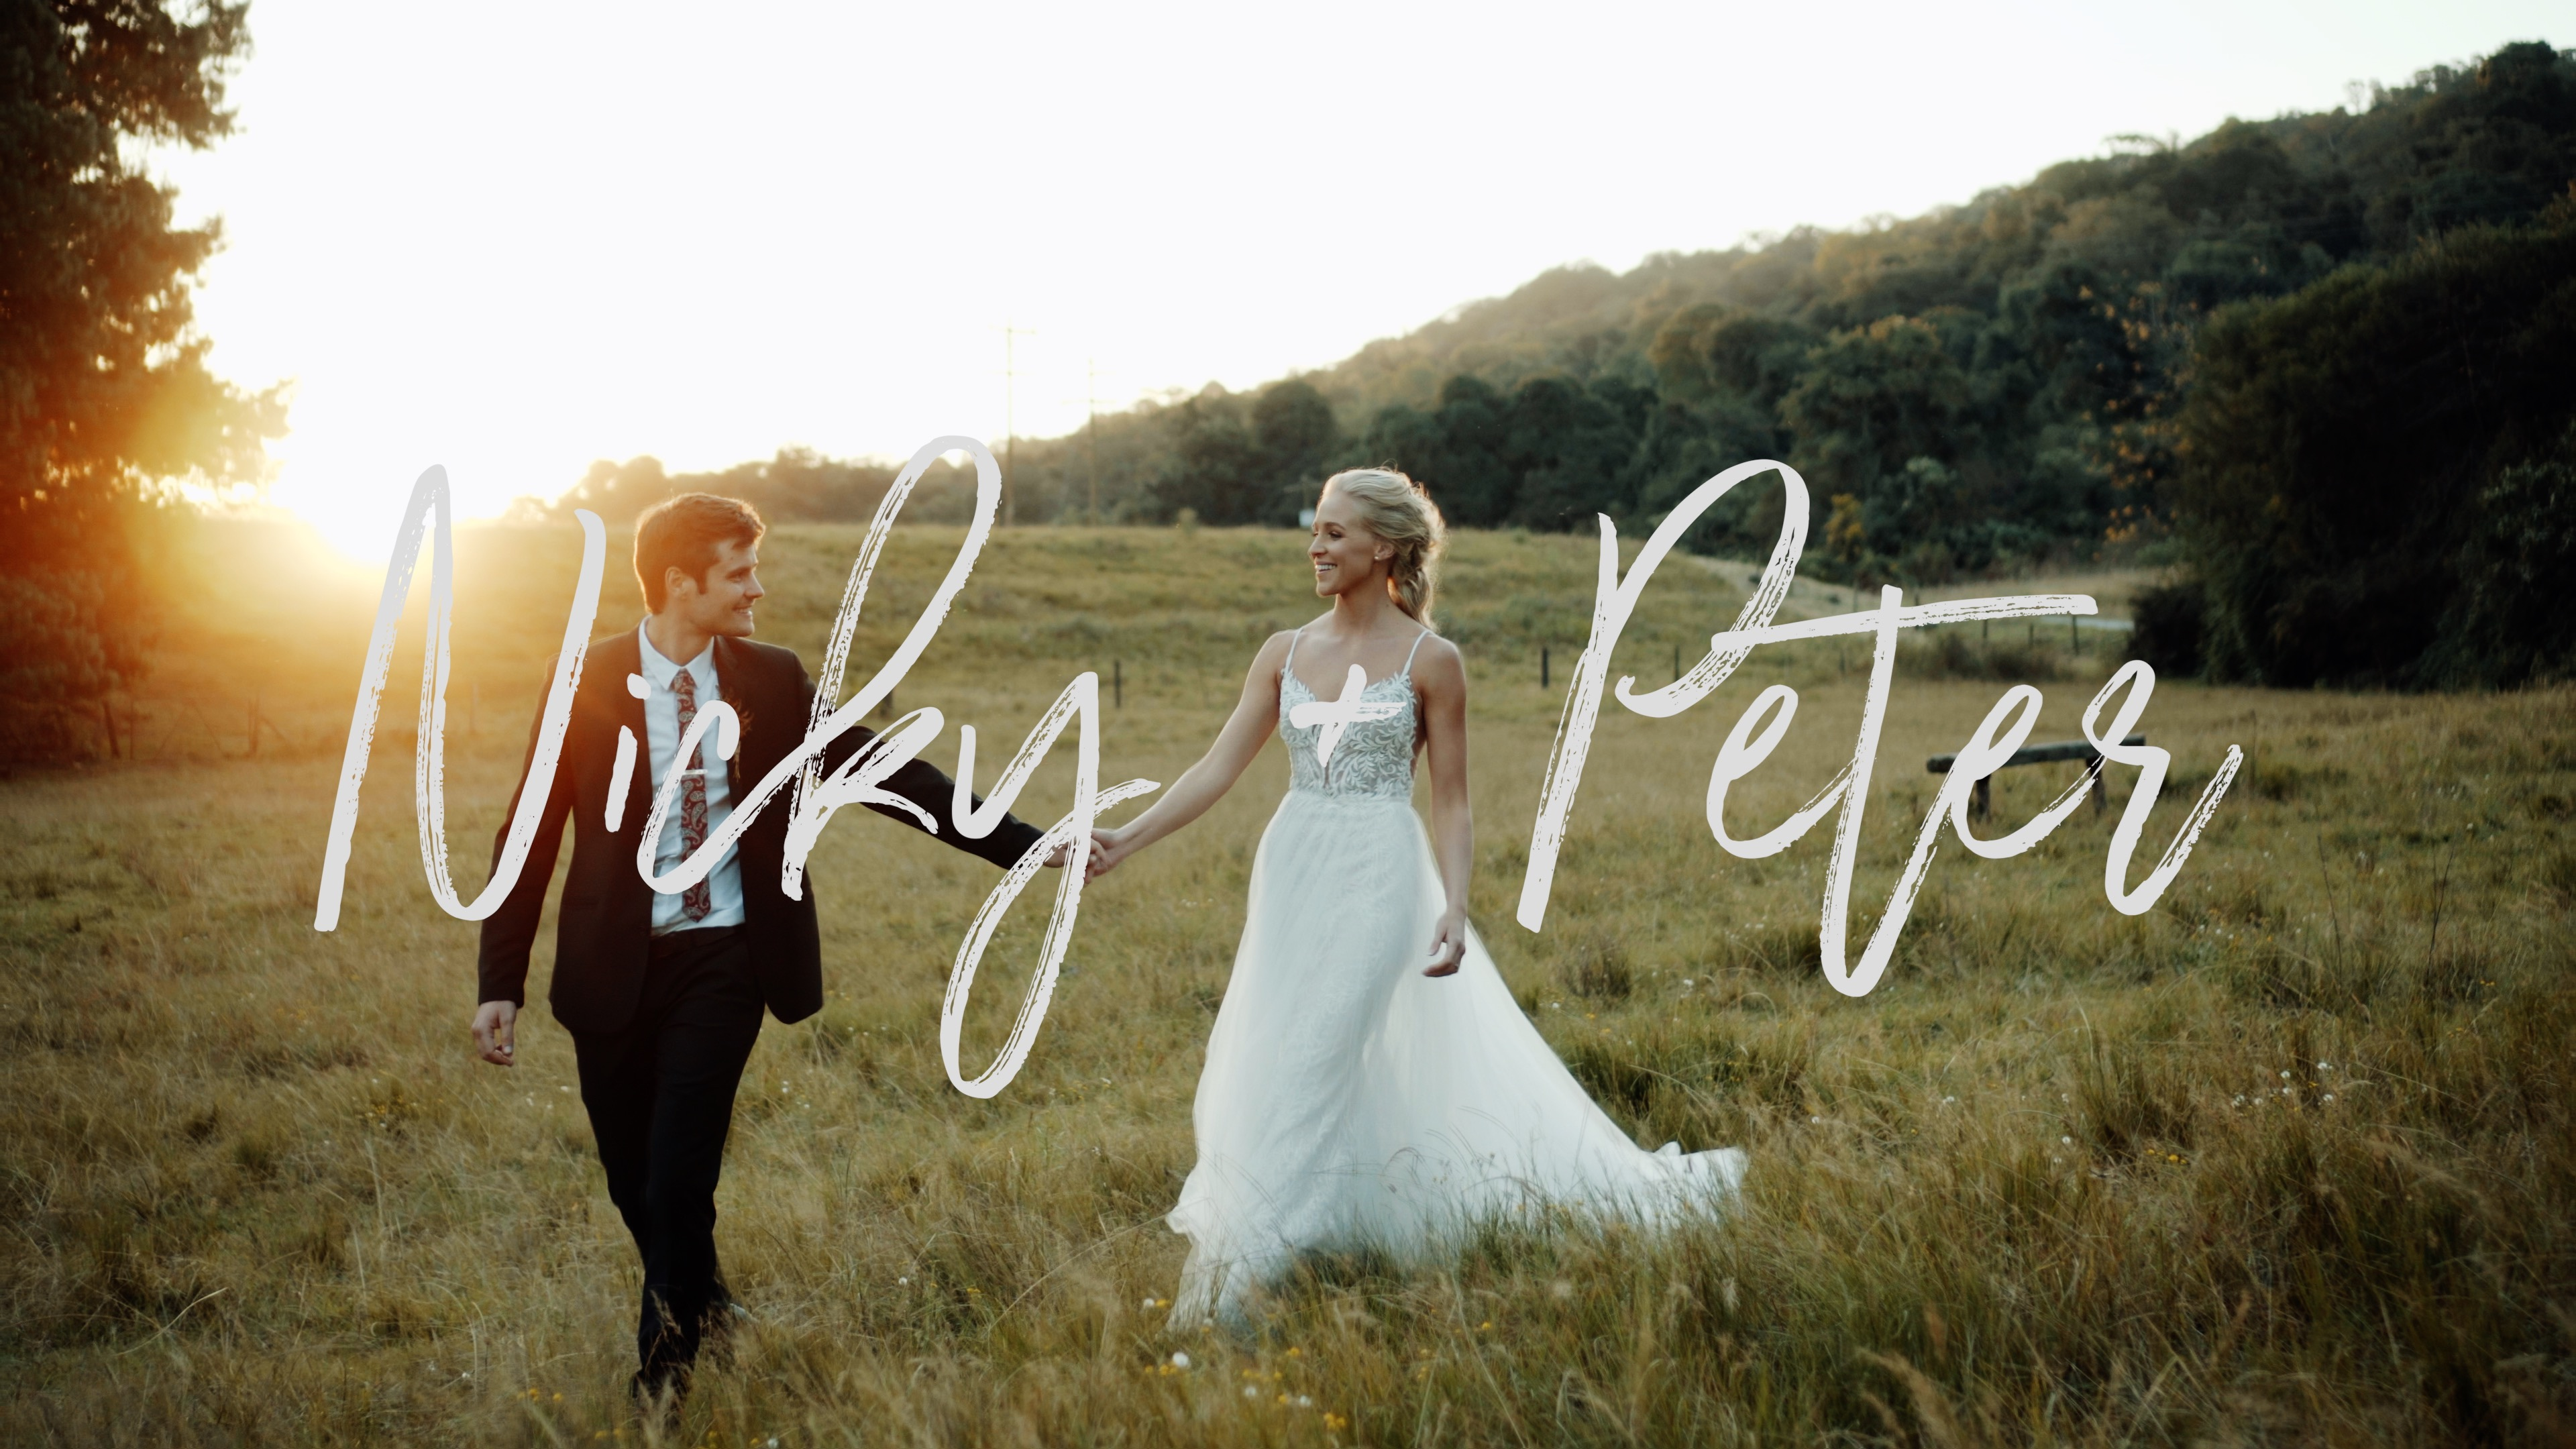 Nicky + Peter | Howick, South Africa | The Glades Farm